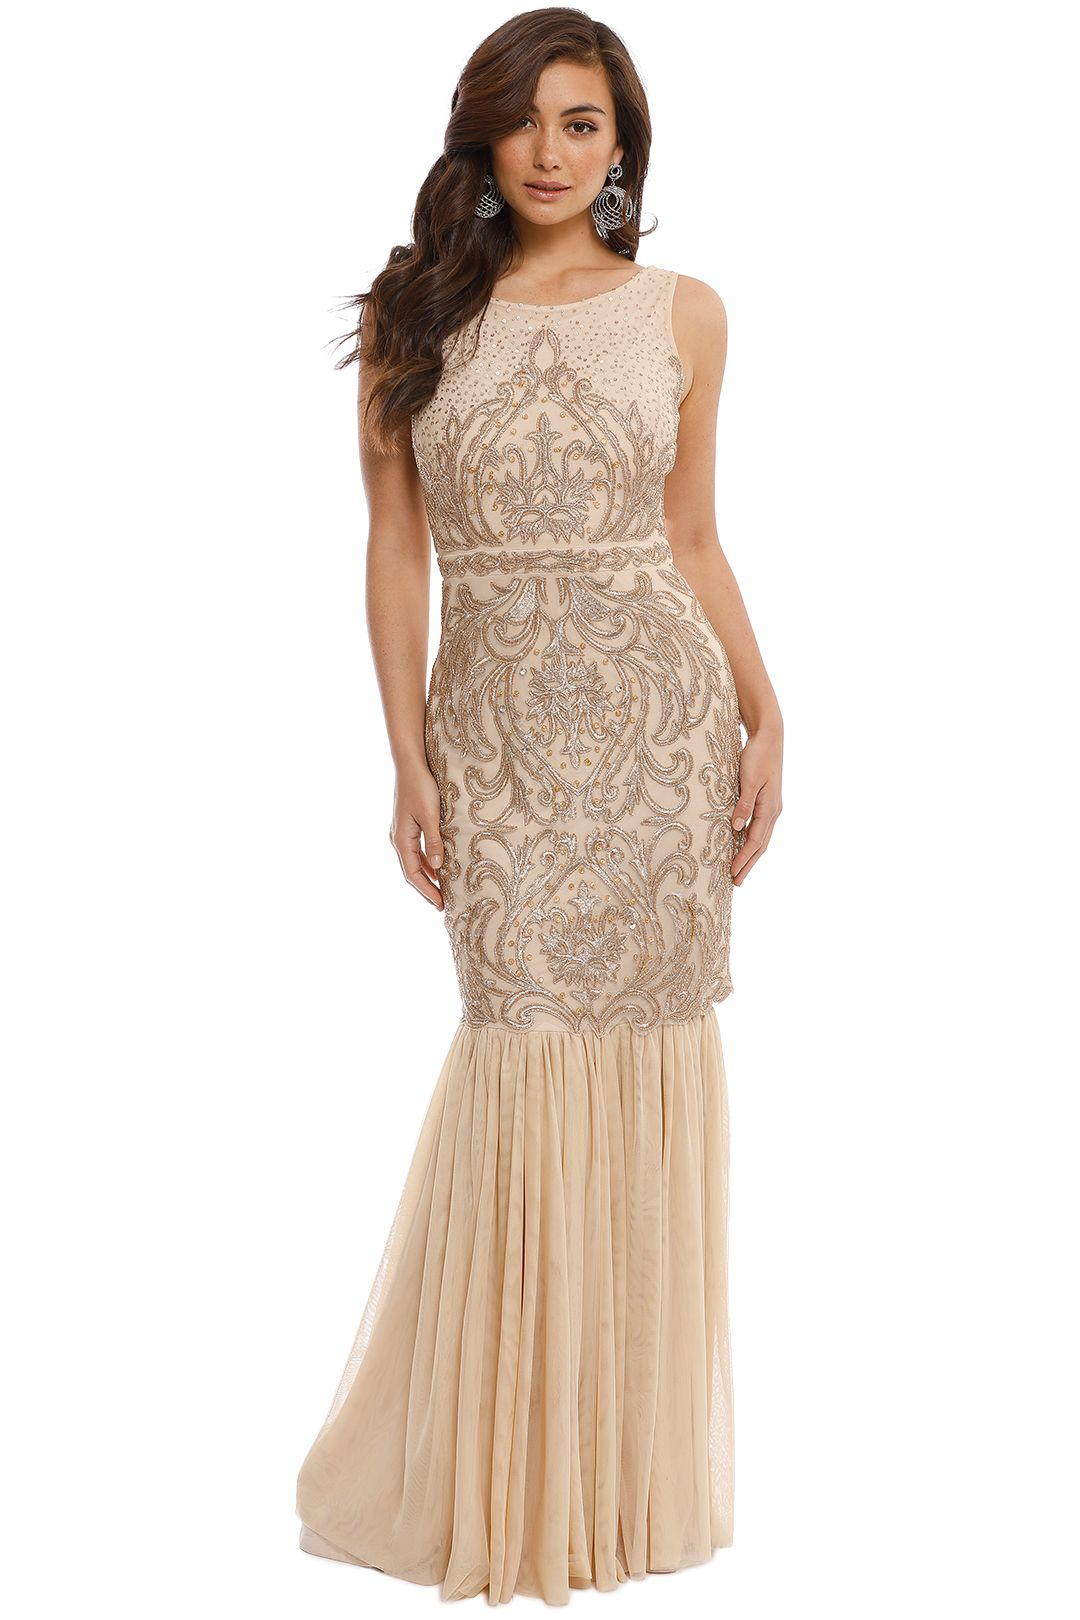 Beaded Gown By Badgley Mischka For Rent Glamcorner